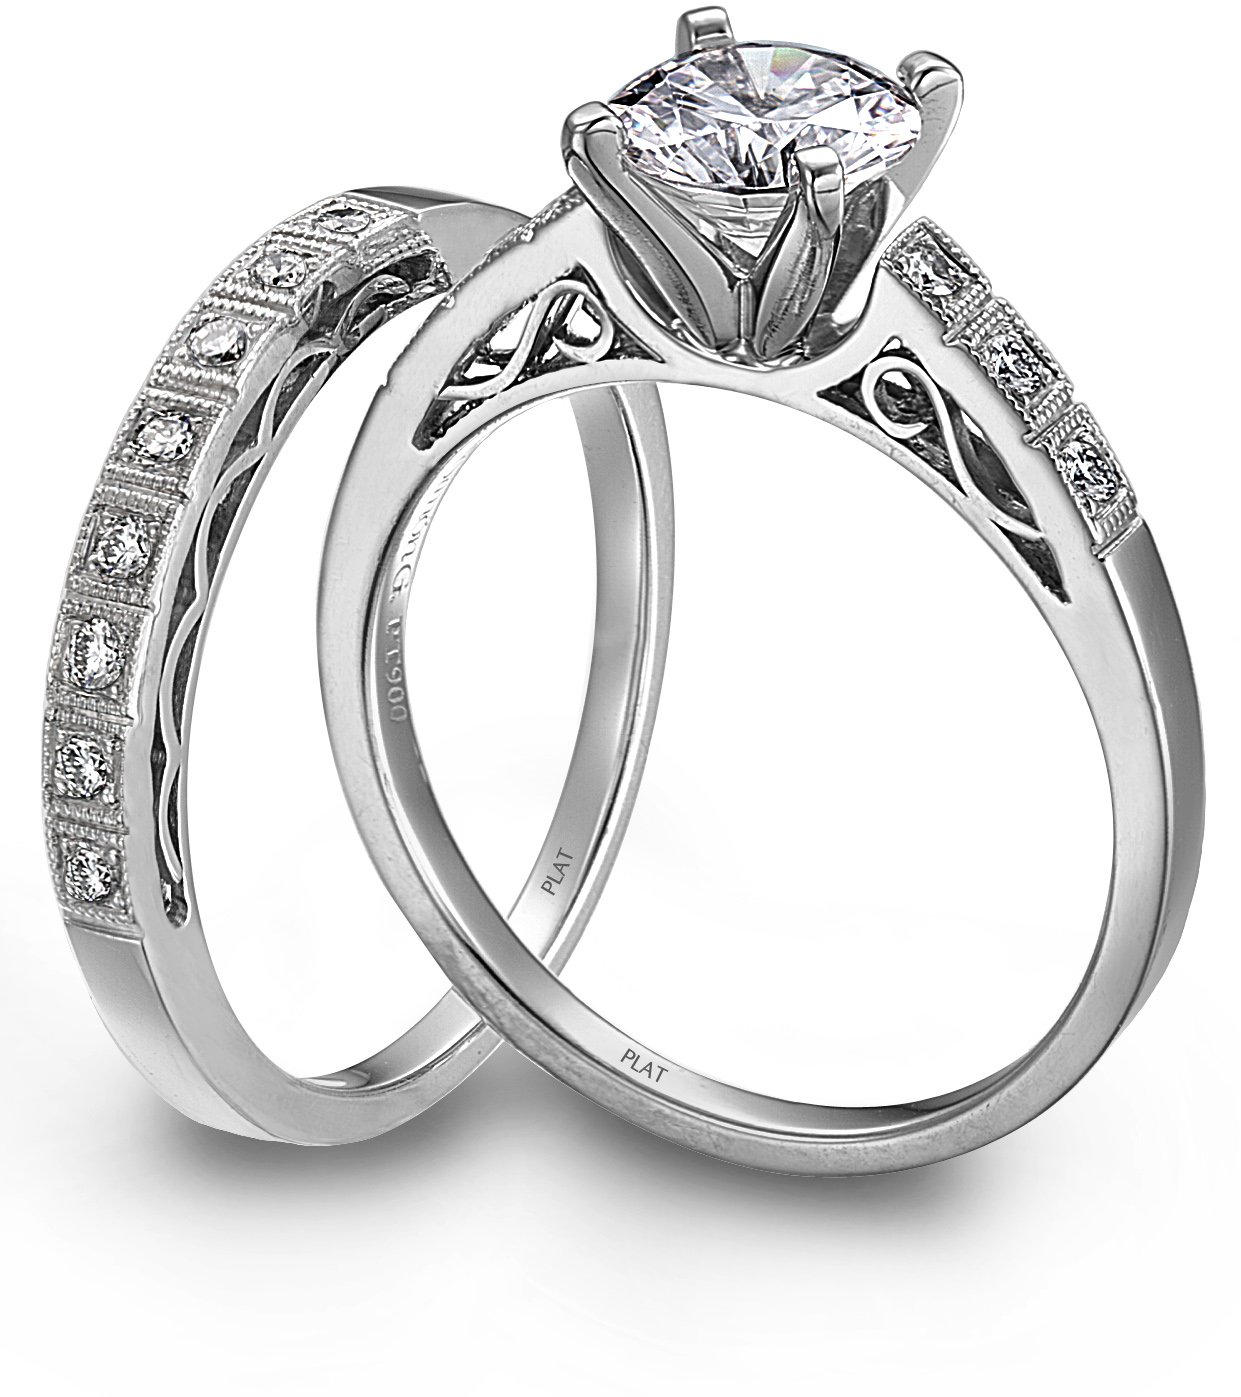 womans wedding ring - Pics Of Wedding Rings